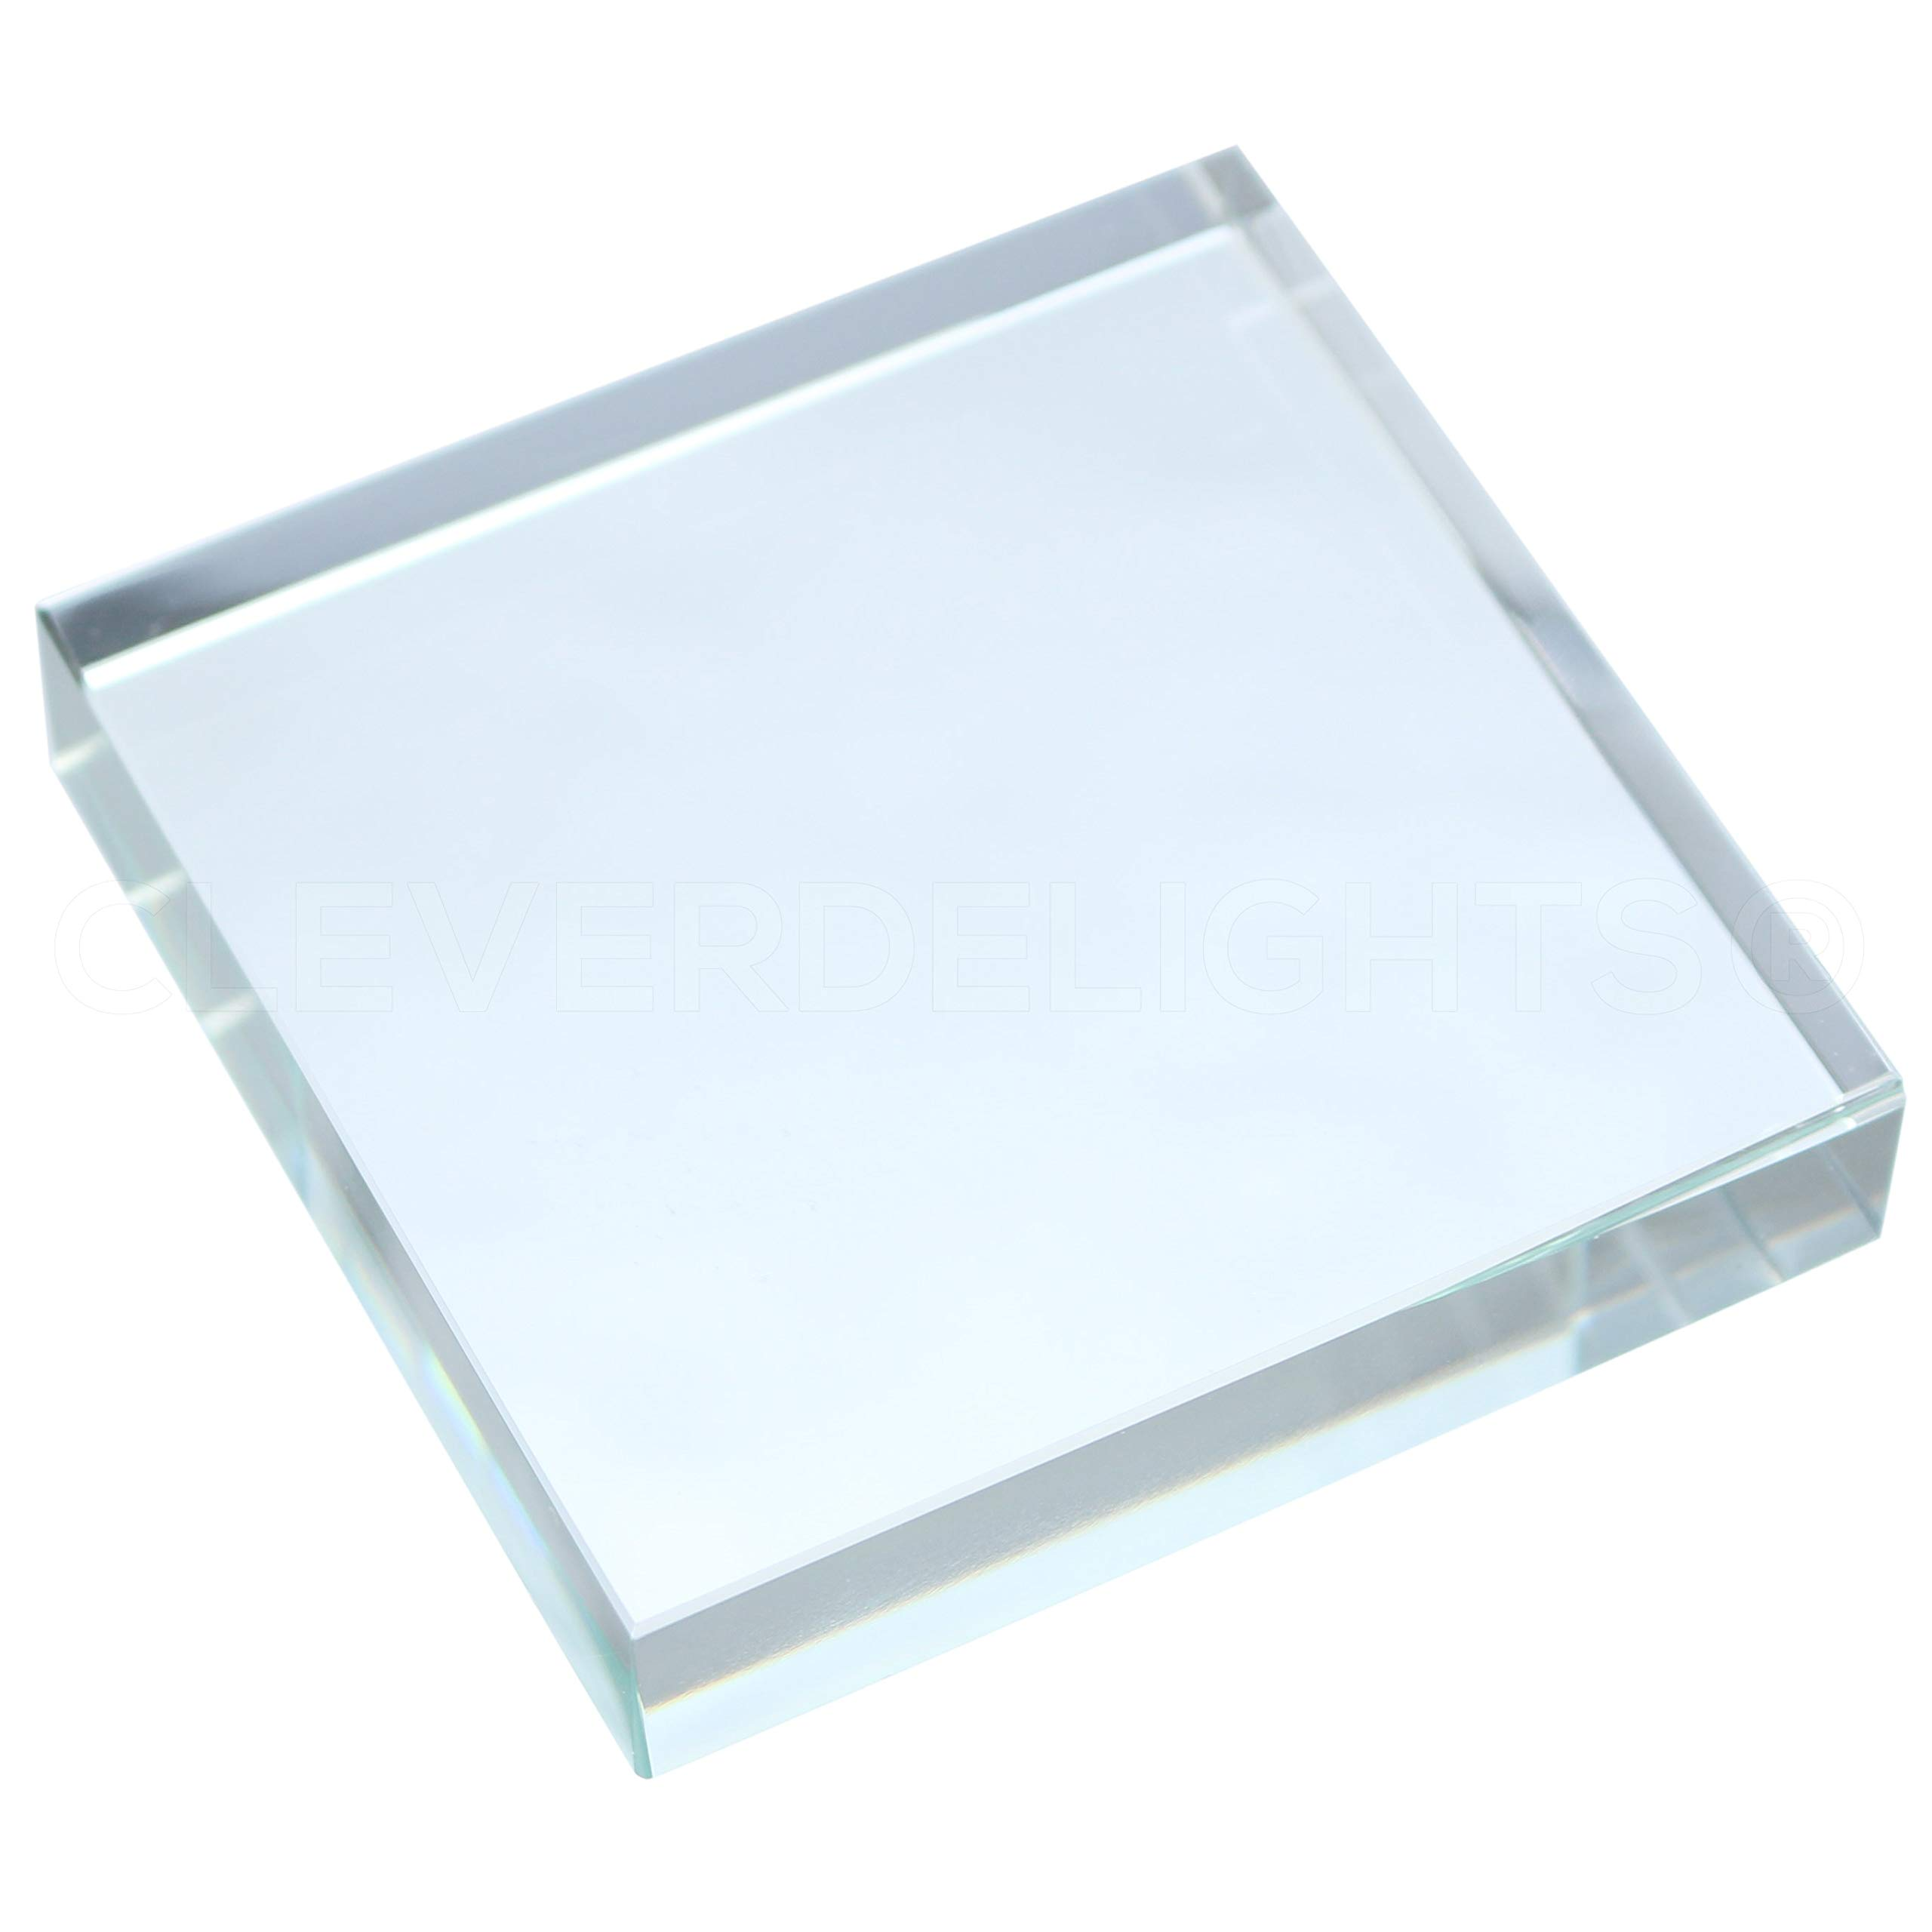 10 Pack - CleverDelights 3 Inch Square Glass Tiles - Clear Solid Glass Tiles - 3'' x 3'' x 5/8'' Thick